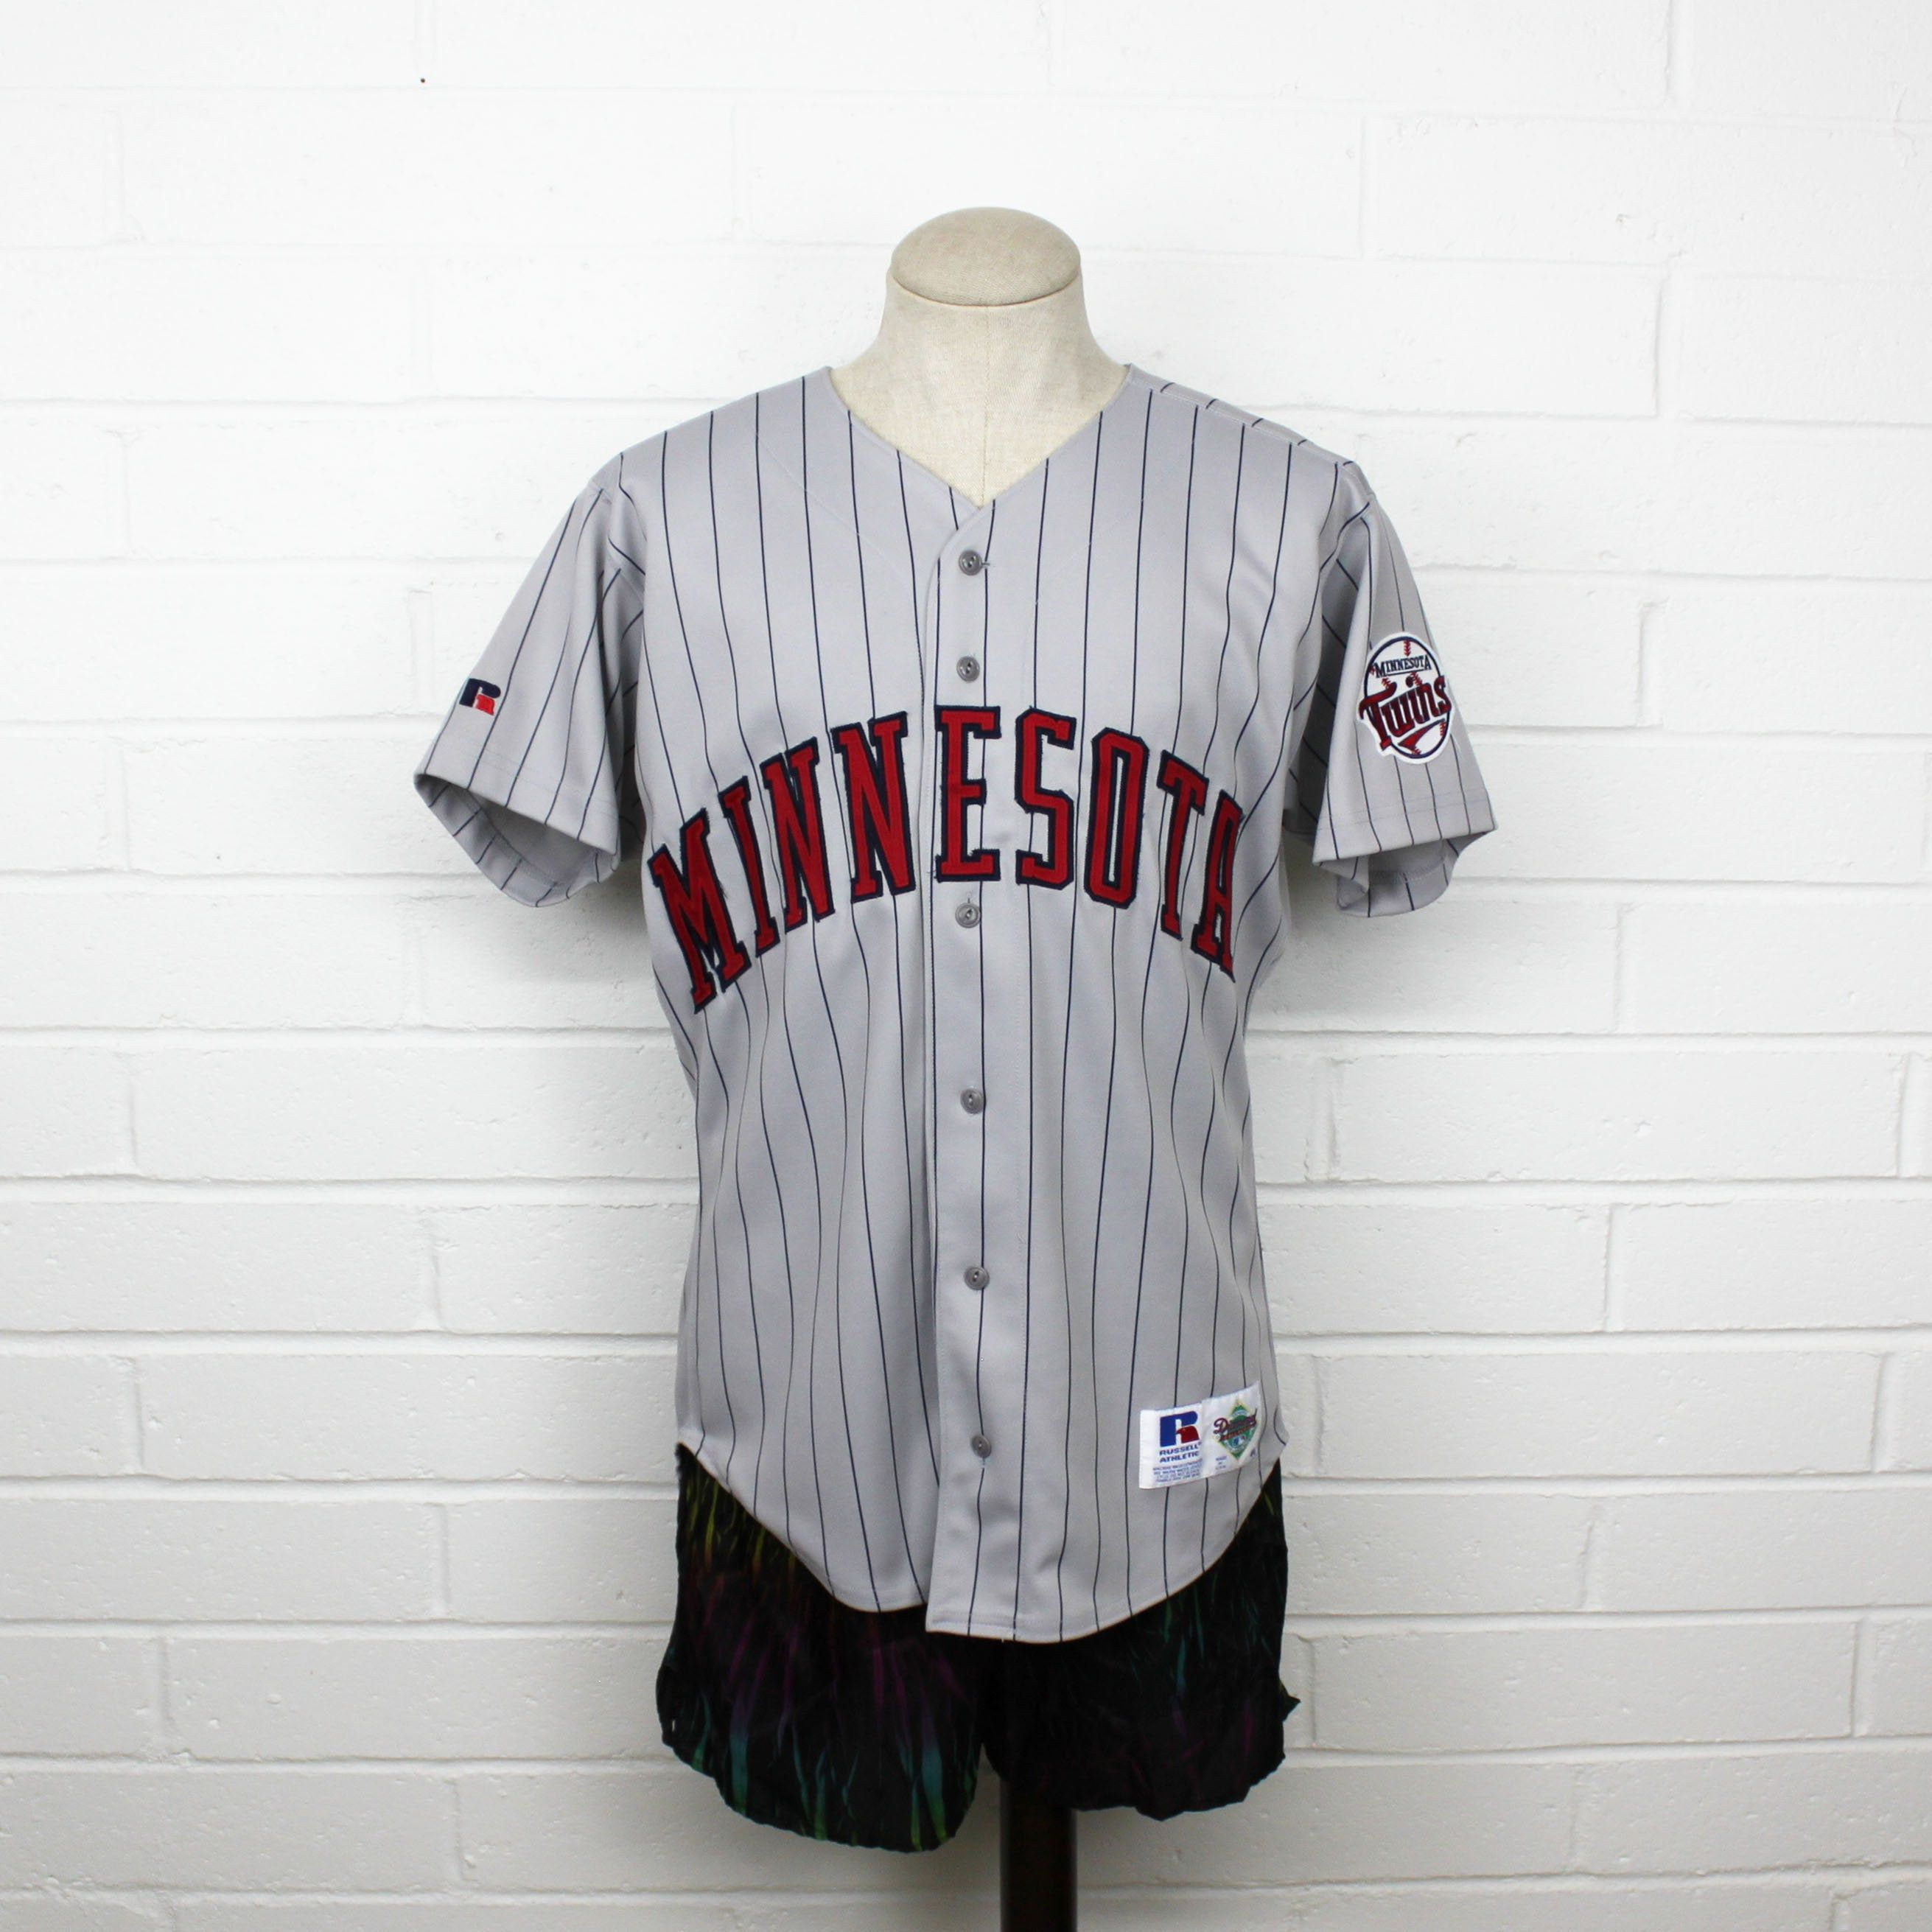 Vintage 90s Minnesota Twins Baseball Jersey Grey Size 44 Pinstripe Large Patch Stitched Mlb Logo Button Minnesota Twins Baseball Twins Baseball Minnesota Twins